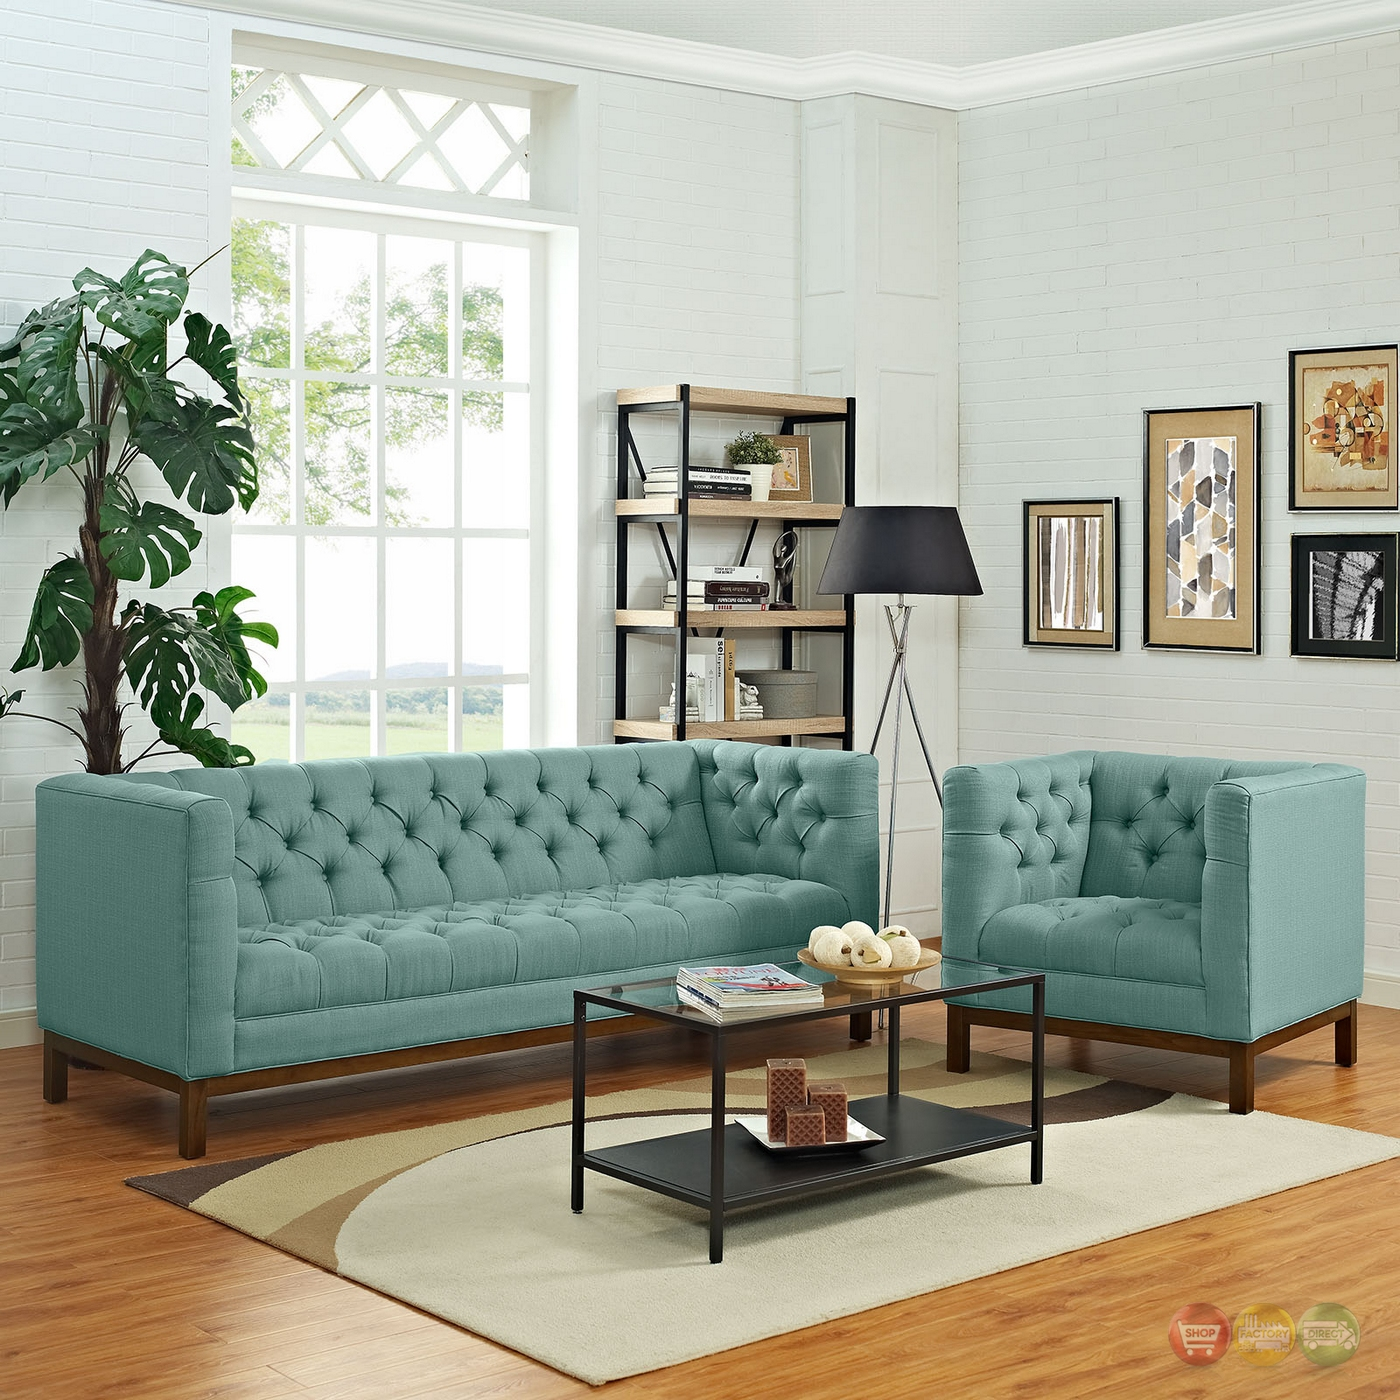 panache sofa set lazy boy recliners reviews mid century modern 2pc upholstered and armchair